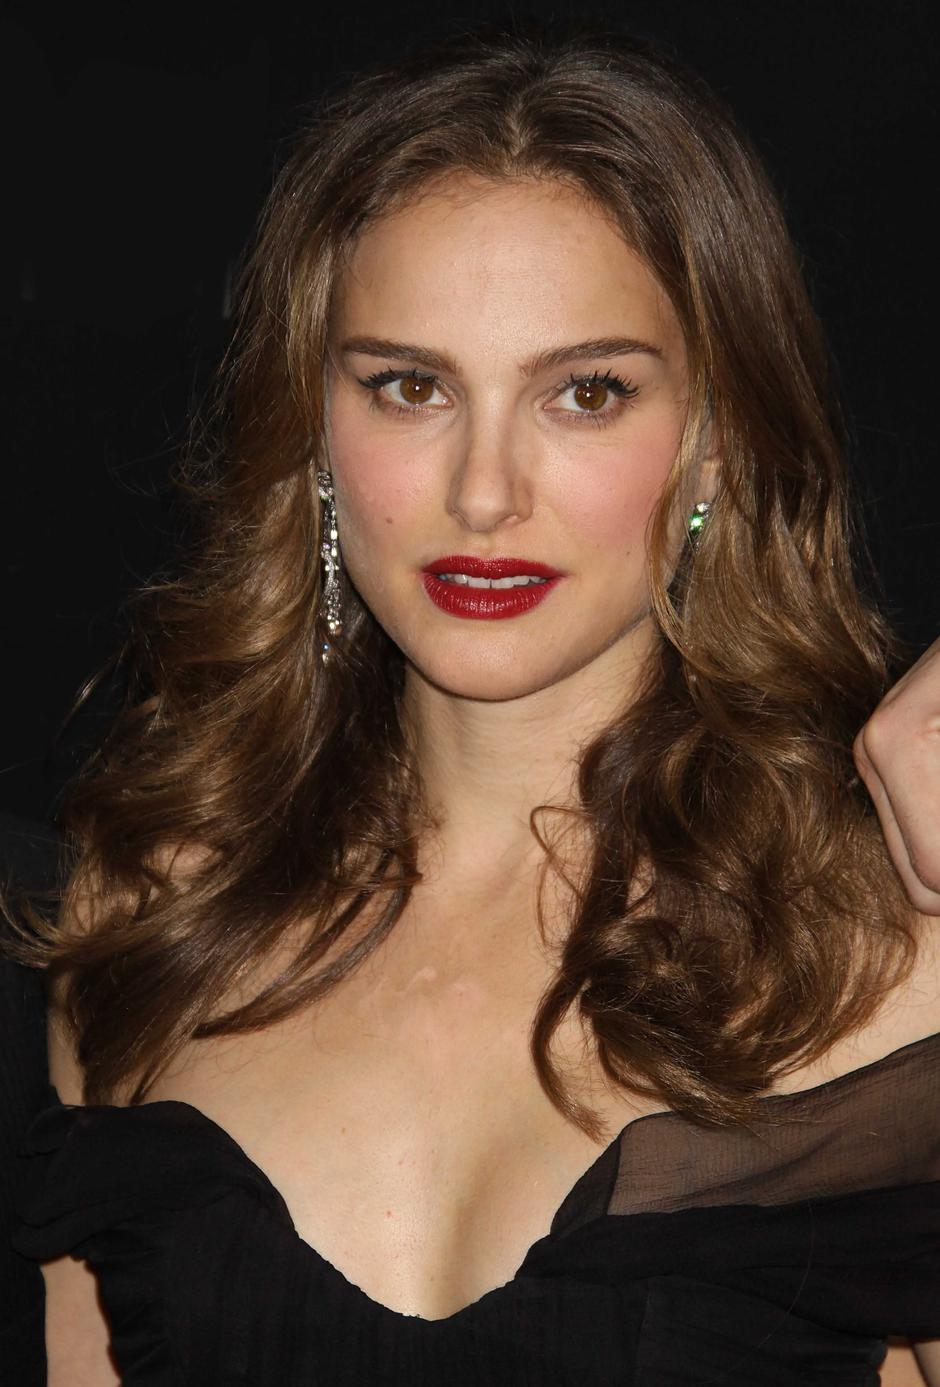 Natalie Portman 2010 | Autor : Photo By John Barrett/Newscom/PIXSELL